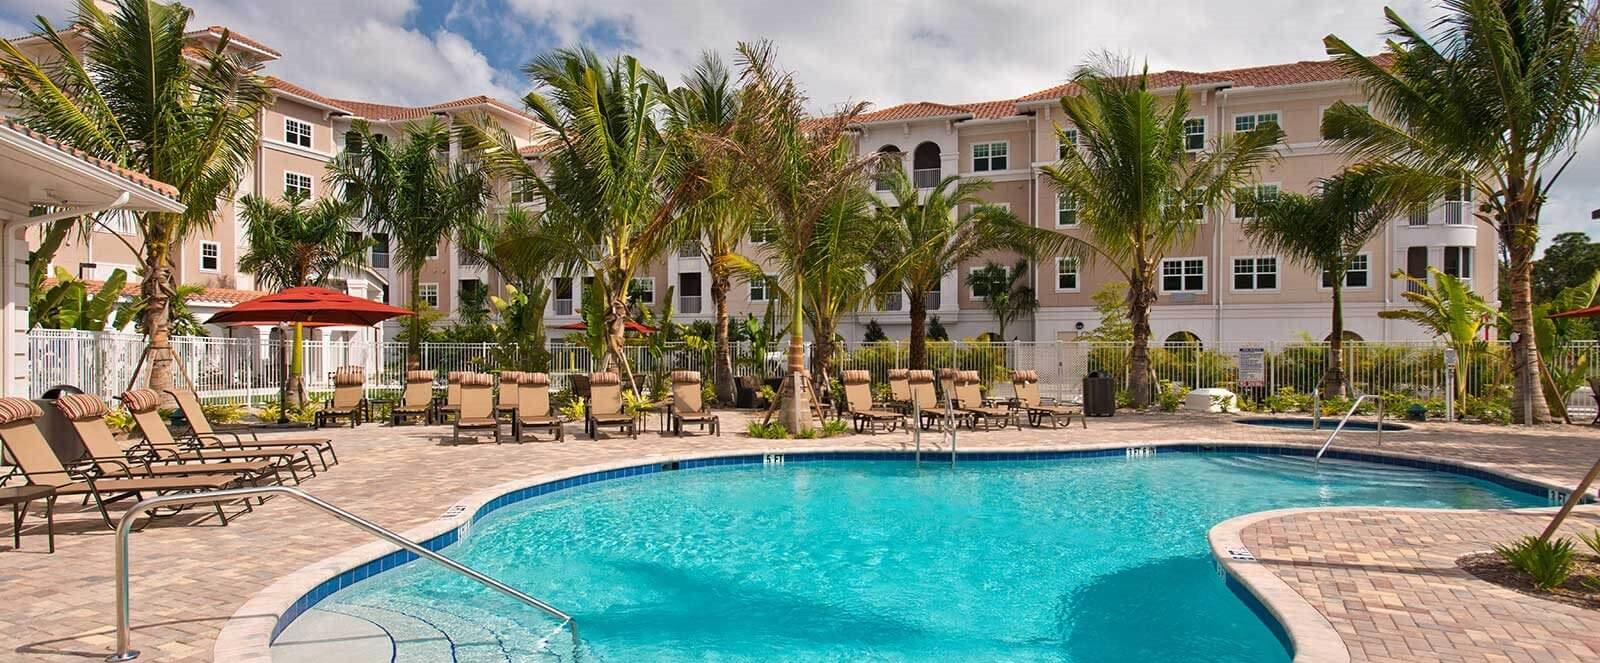 Outdoor pool at Diamond Oaks Village, Bonita Springs, FL, 34134